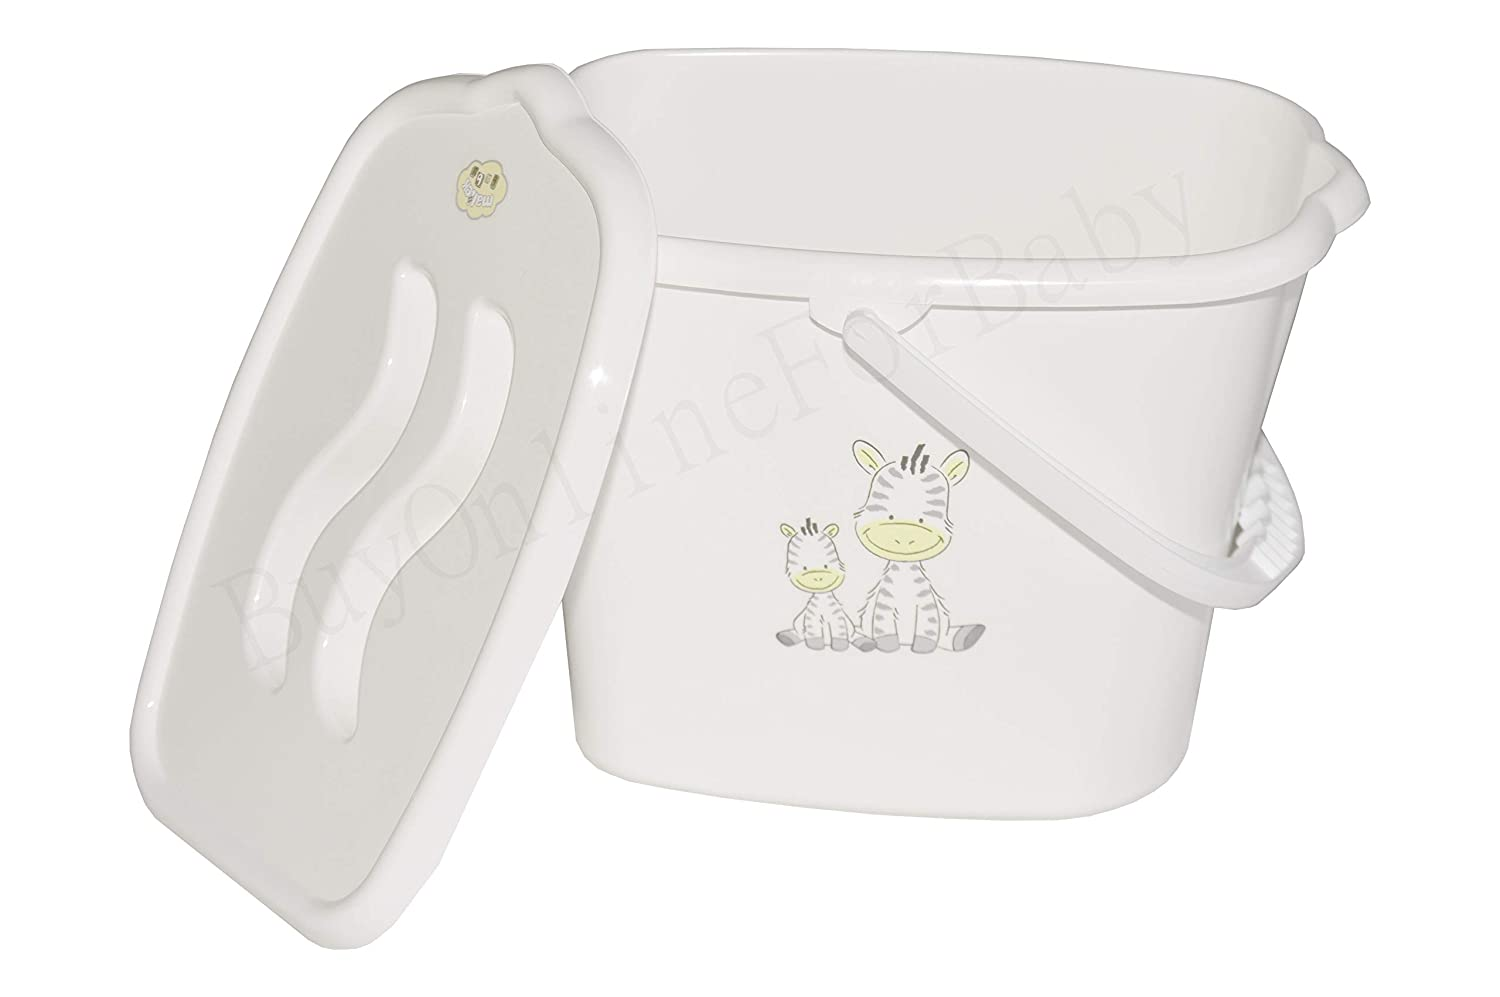 Baby Nappy Changing Dispose Laundry Bin Bucket Storage Container Lid White osigukltd 125